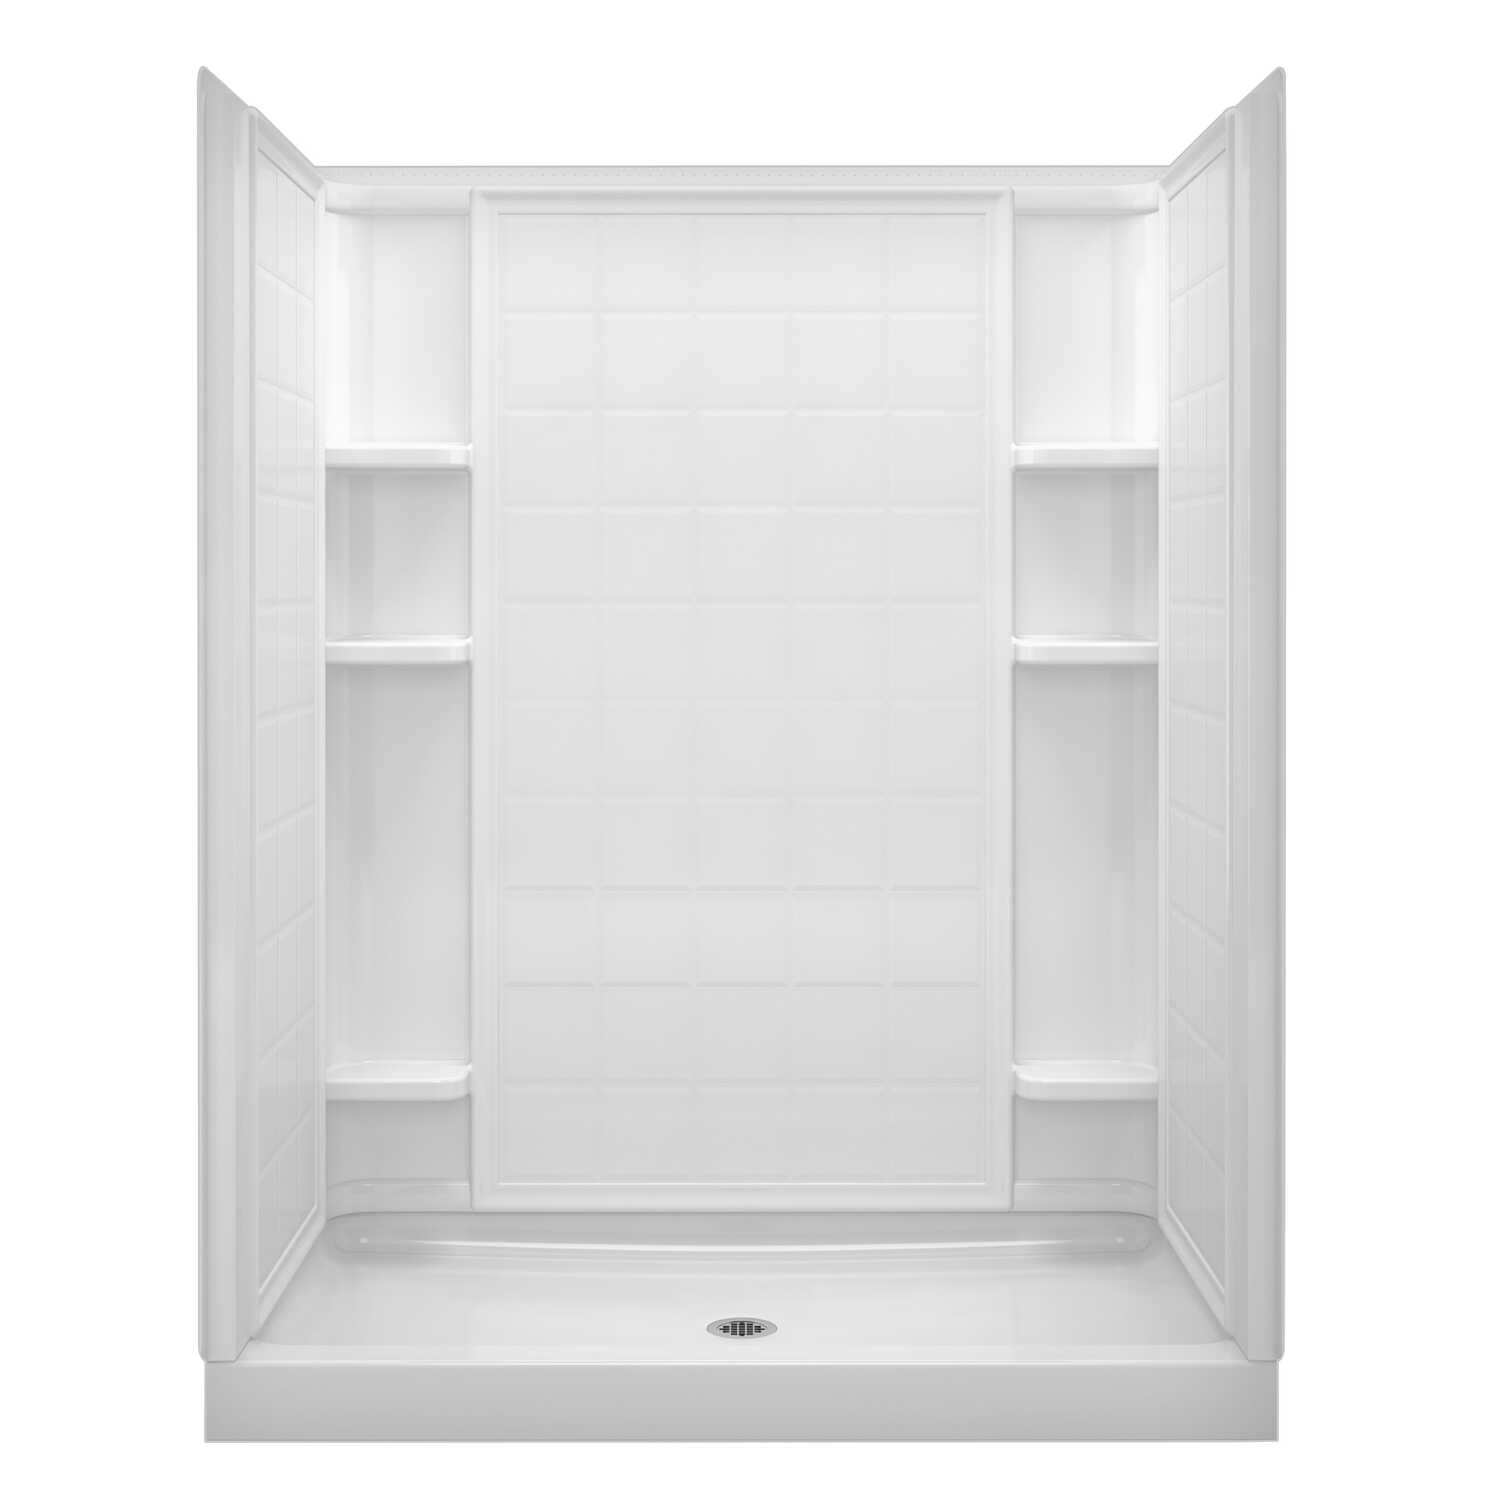 Sterling  Ensemble  75-3/4 in. H x 34 in. W x 60 in. L White  Shower Back Wall  Plastic composite  S